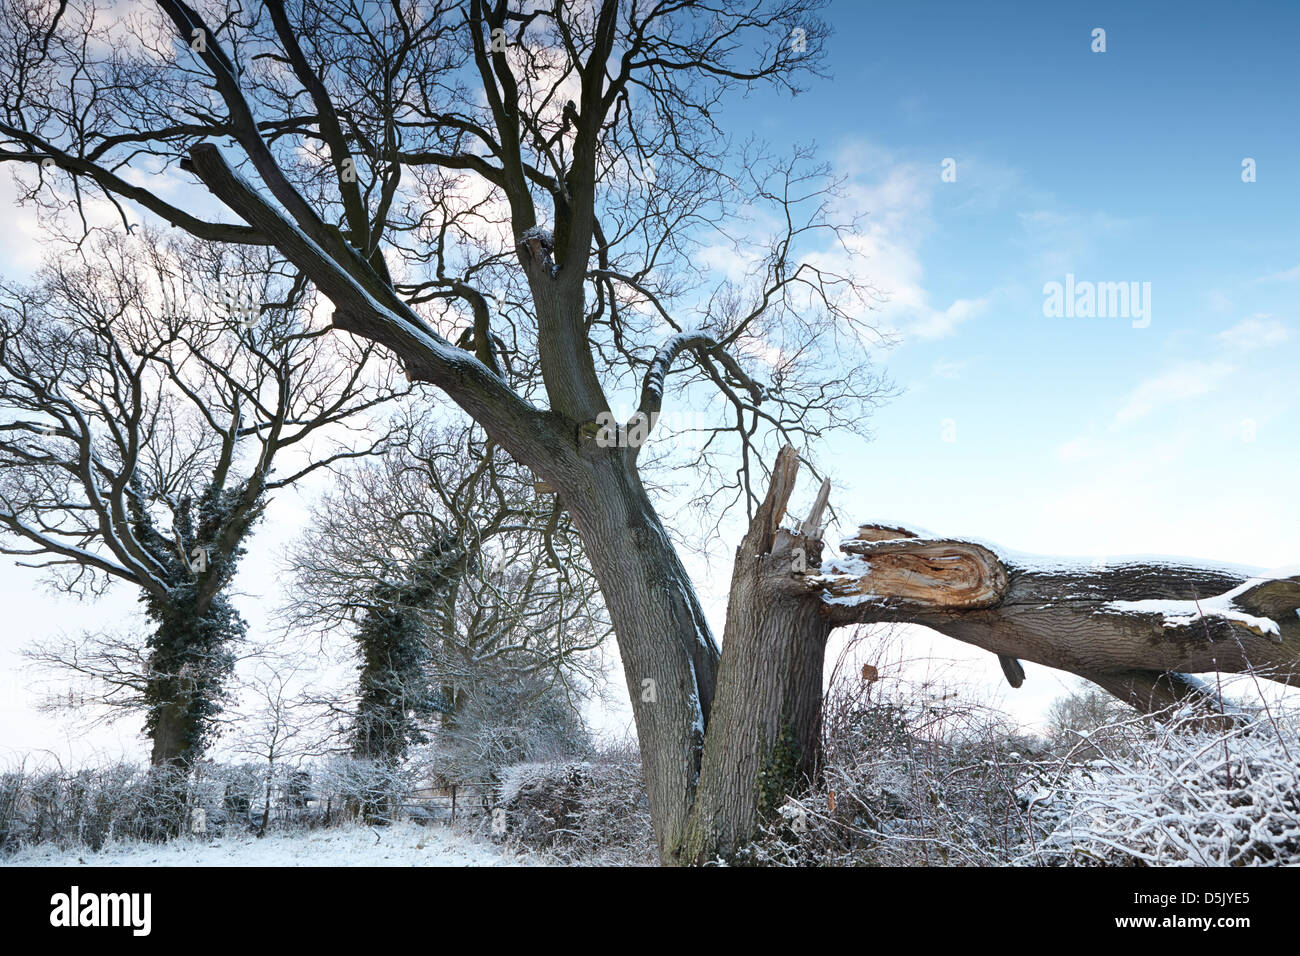 oak trees hedgerow in winter stockfotos oak trees hedgerow in winter bilder alamy. Black Bedroom Furniture Sets. Home Design Ideas